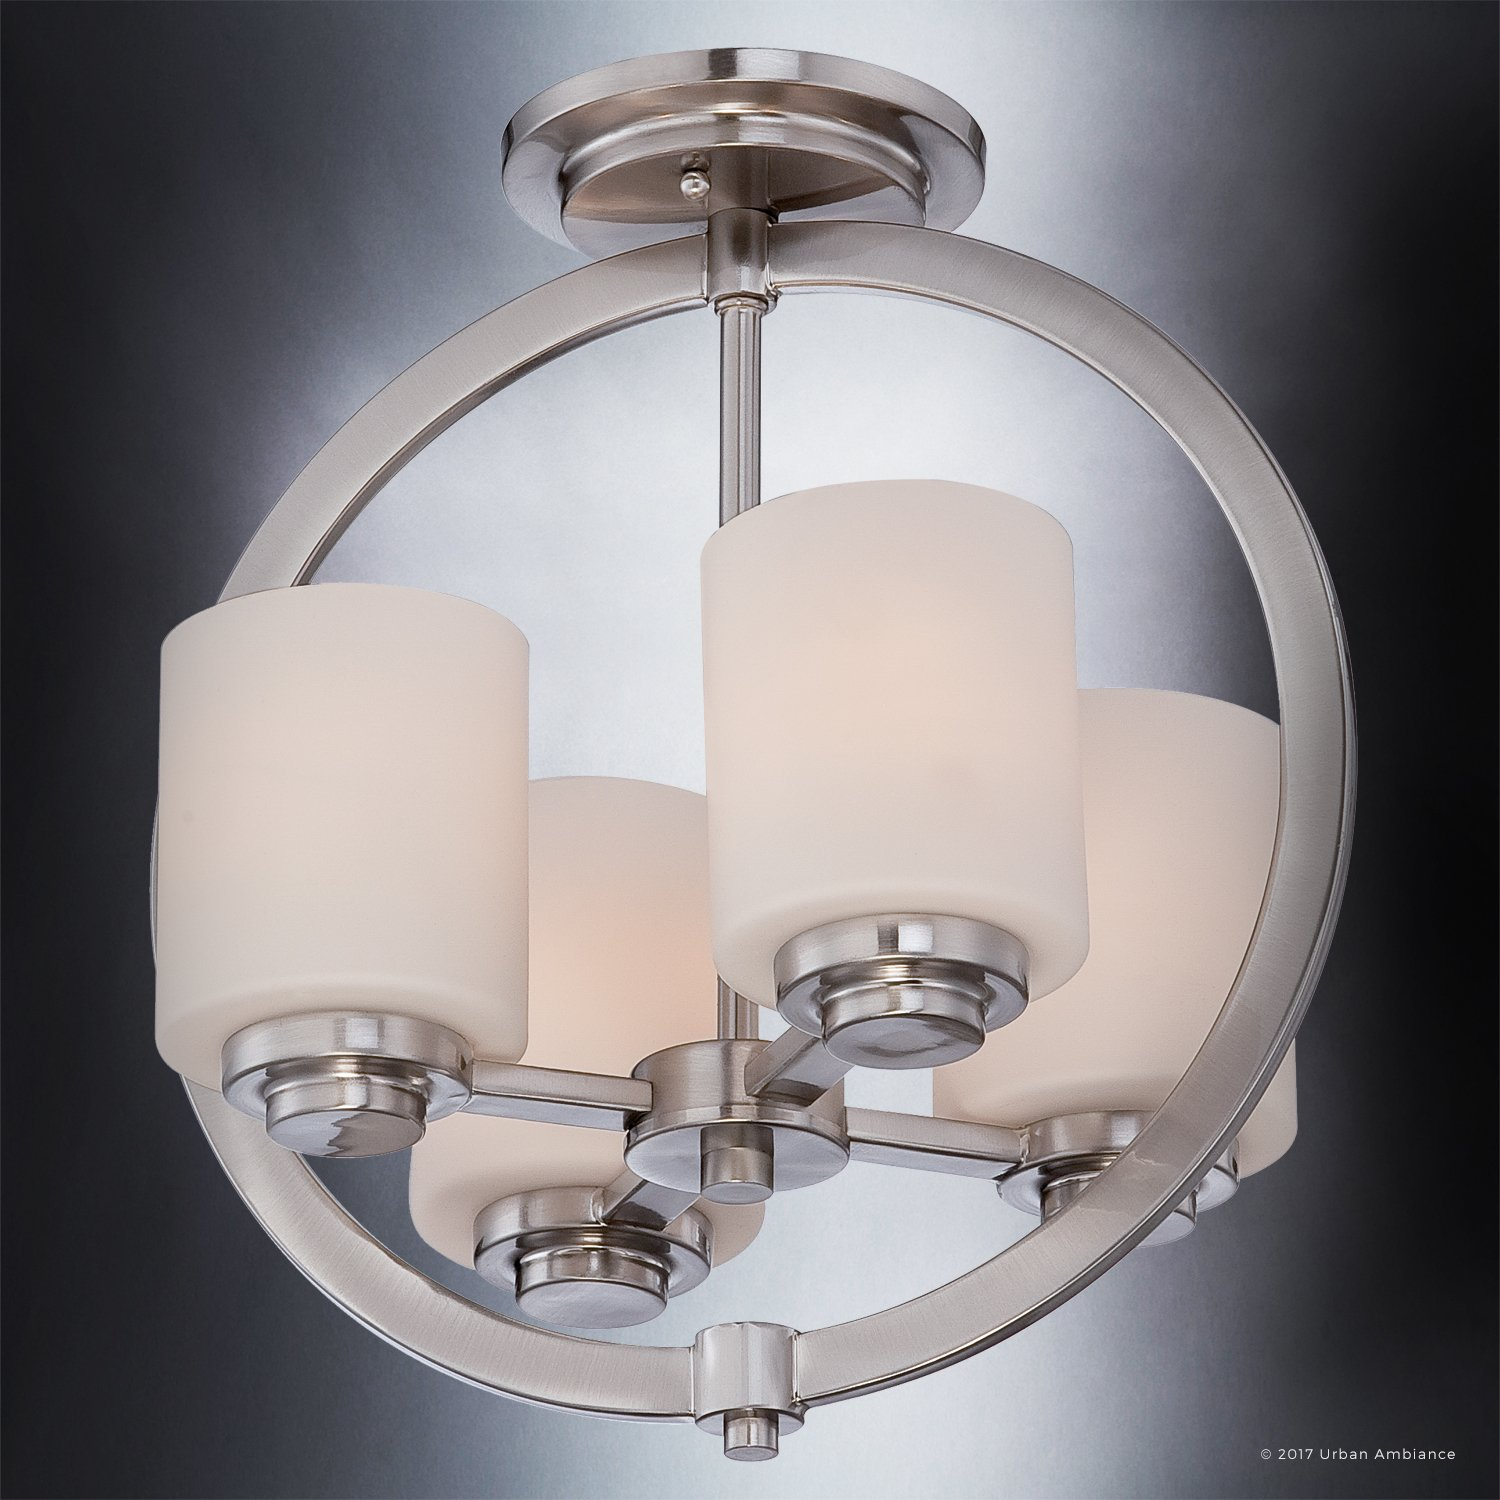 Luxury Contemporary Semi-Flush Ceiling Light, Medium Size: 15''H x 14''W, with Traditional Style Elements, Globe Design, Pretty Brushed Nickel Finish and Opal Etched Glass, UQL2171 by Urban Ambiance by Urban Ambiance (Image #4)